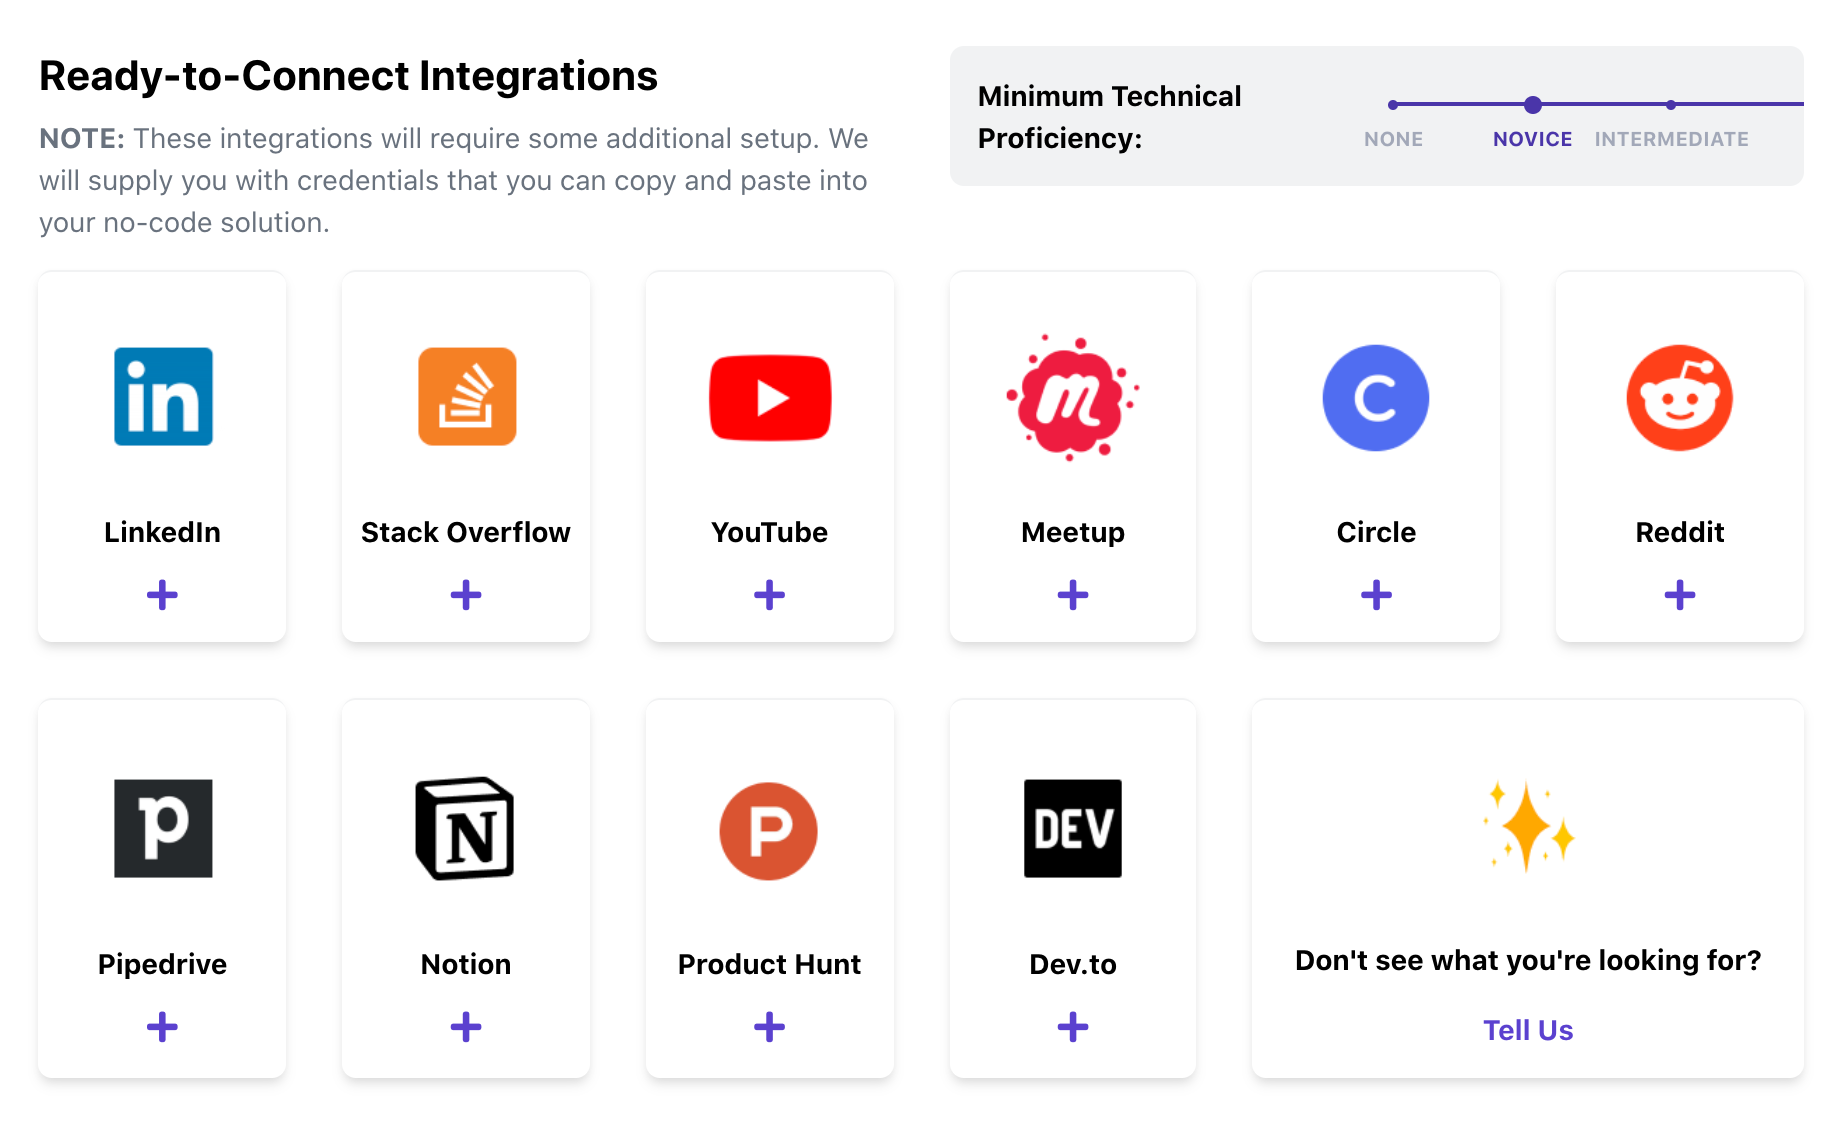 Ready-to-Connect Integrations